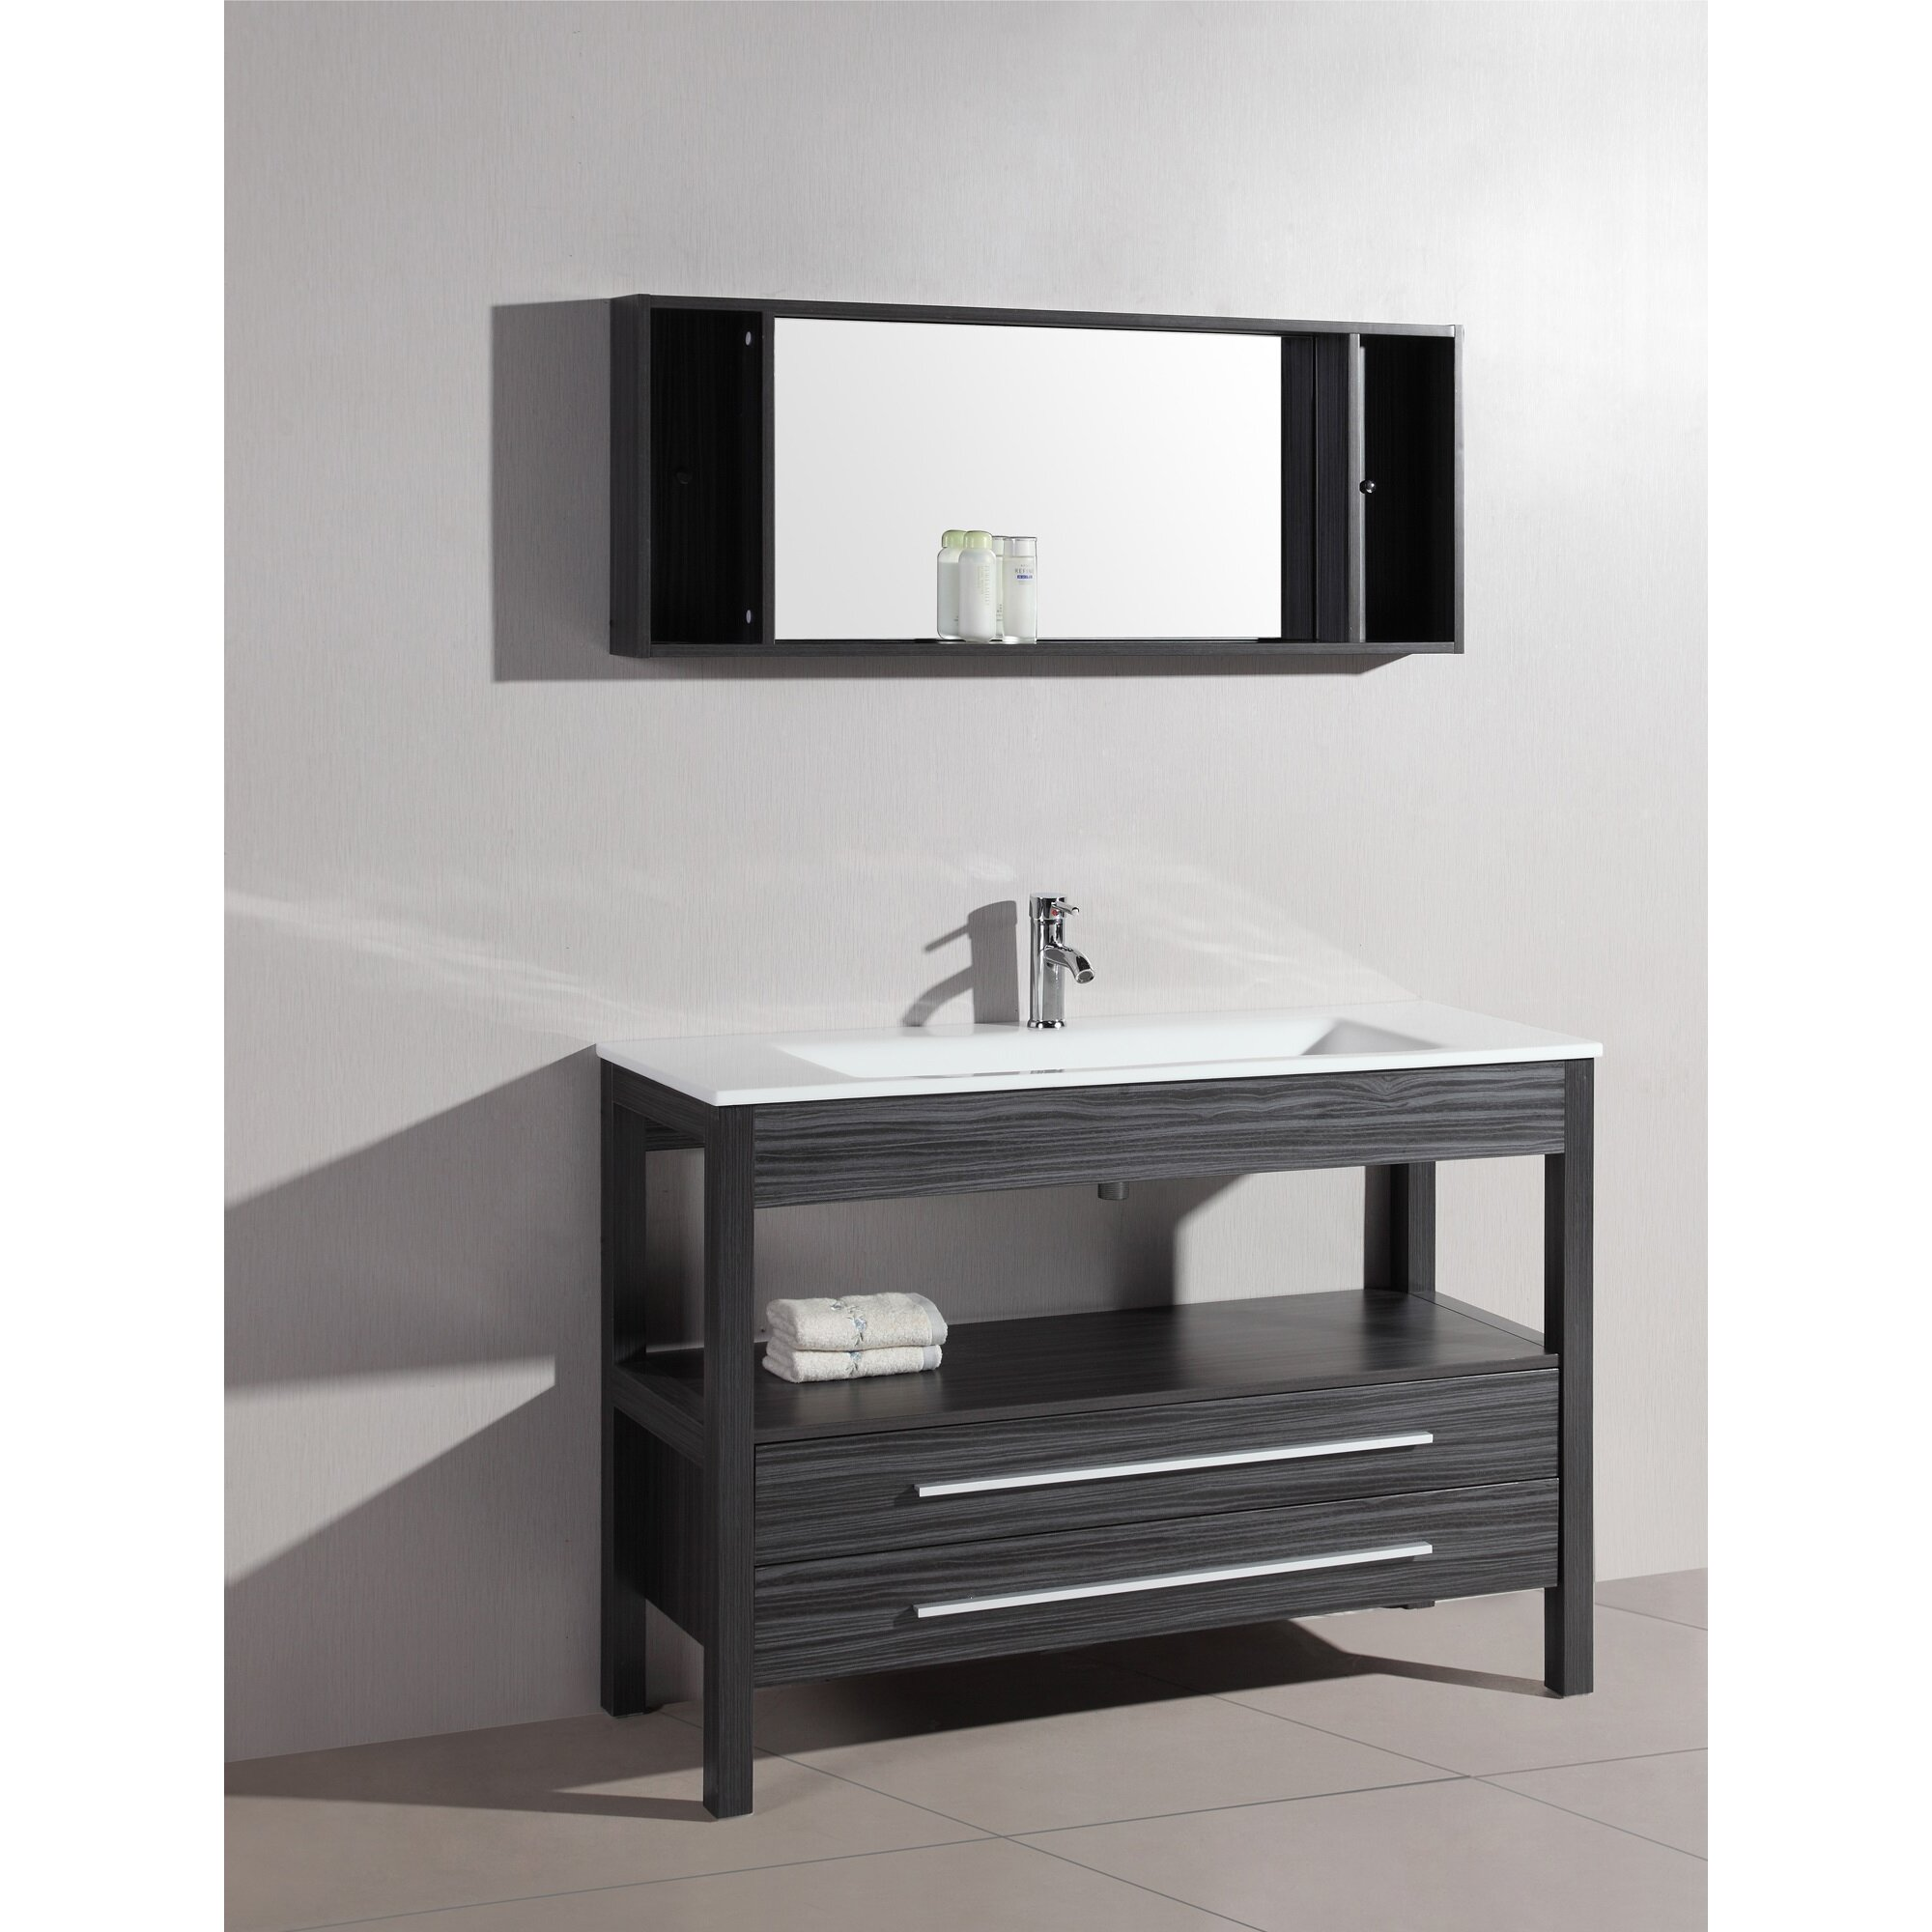 Bosconi contemporary 48 single bathroom vanity set with for 48 inch mirrored bathroom vanity